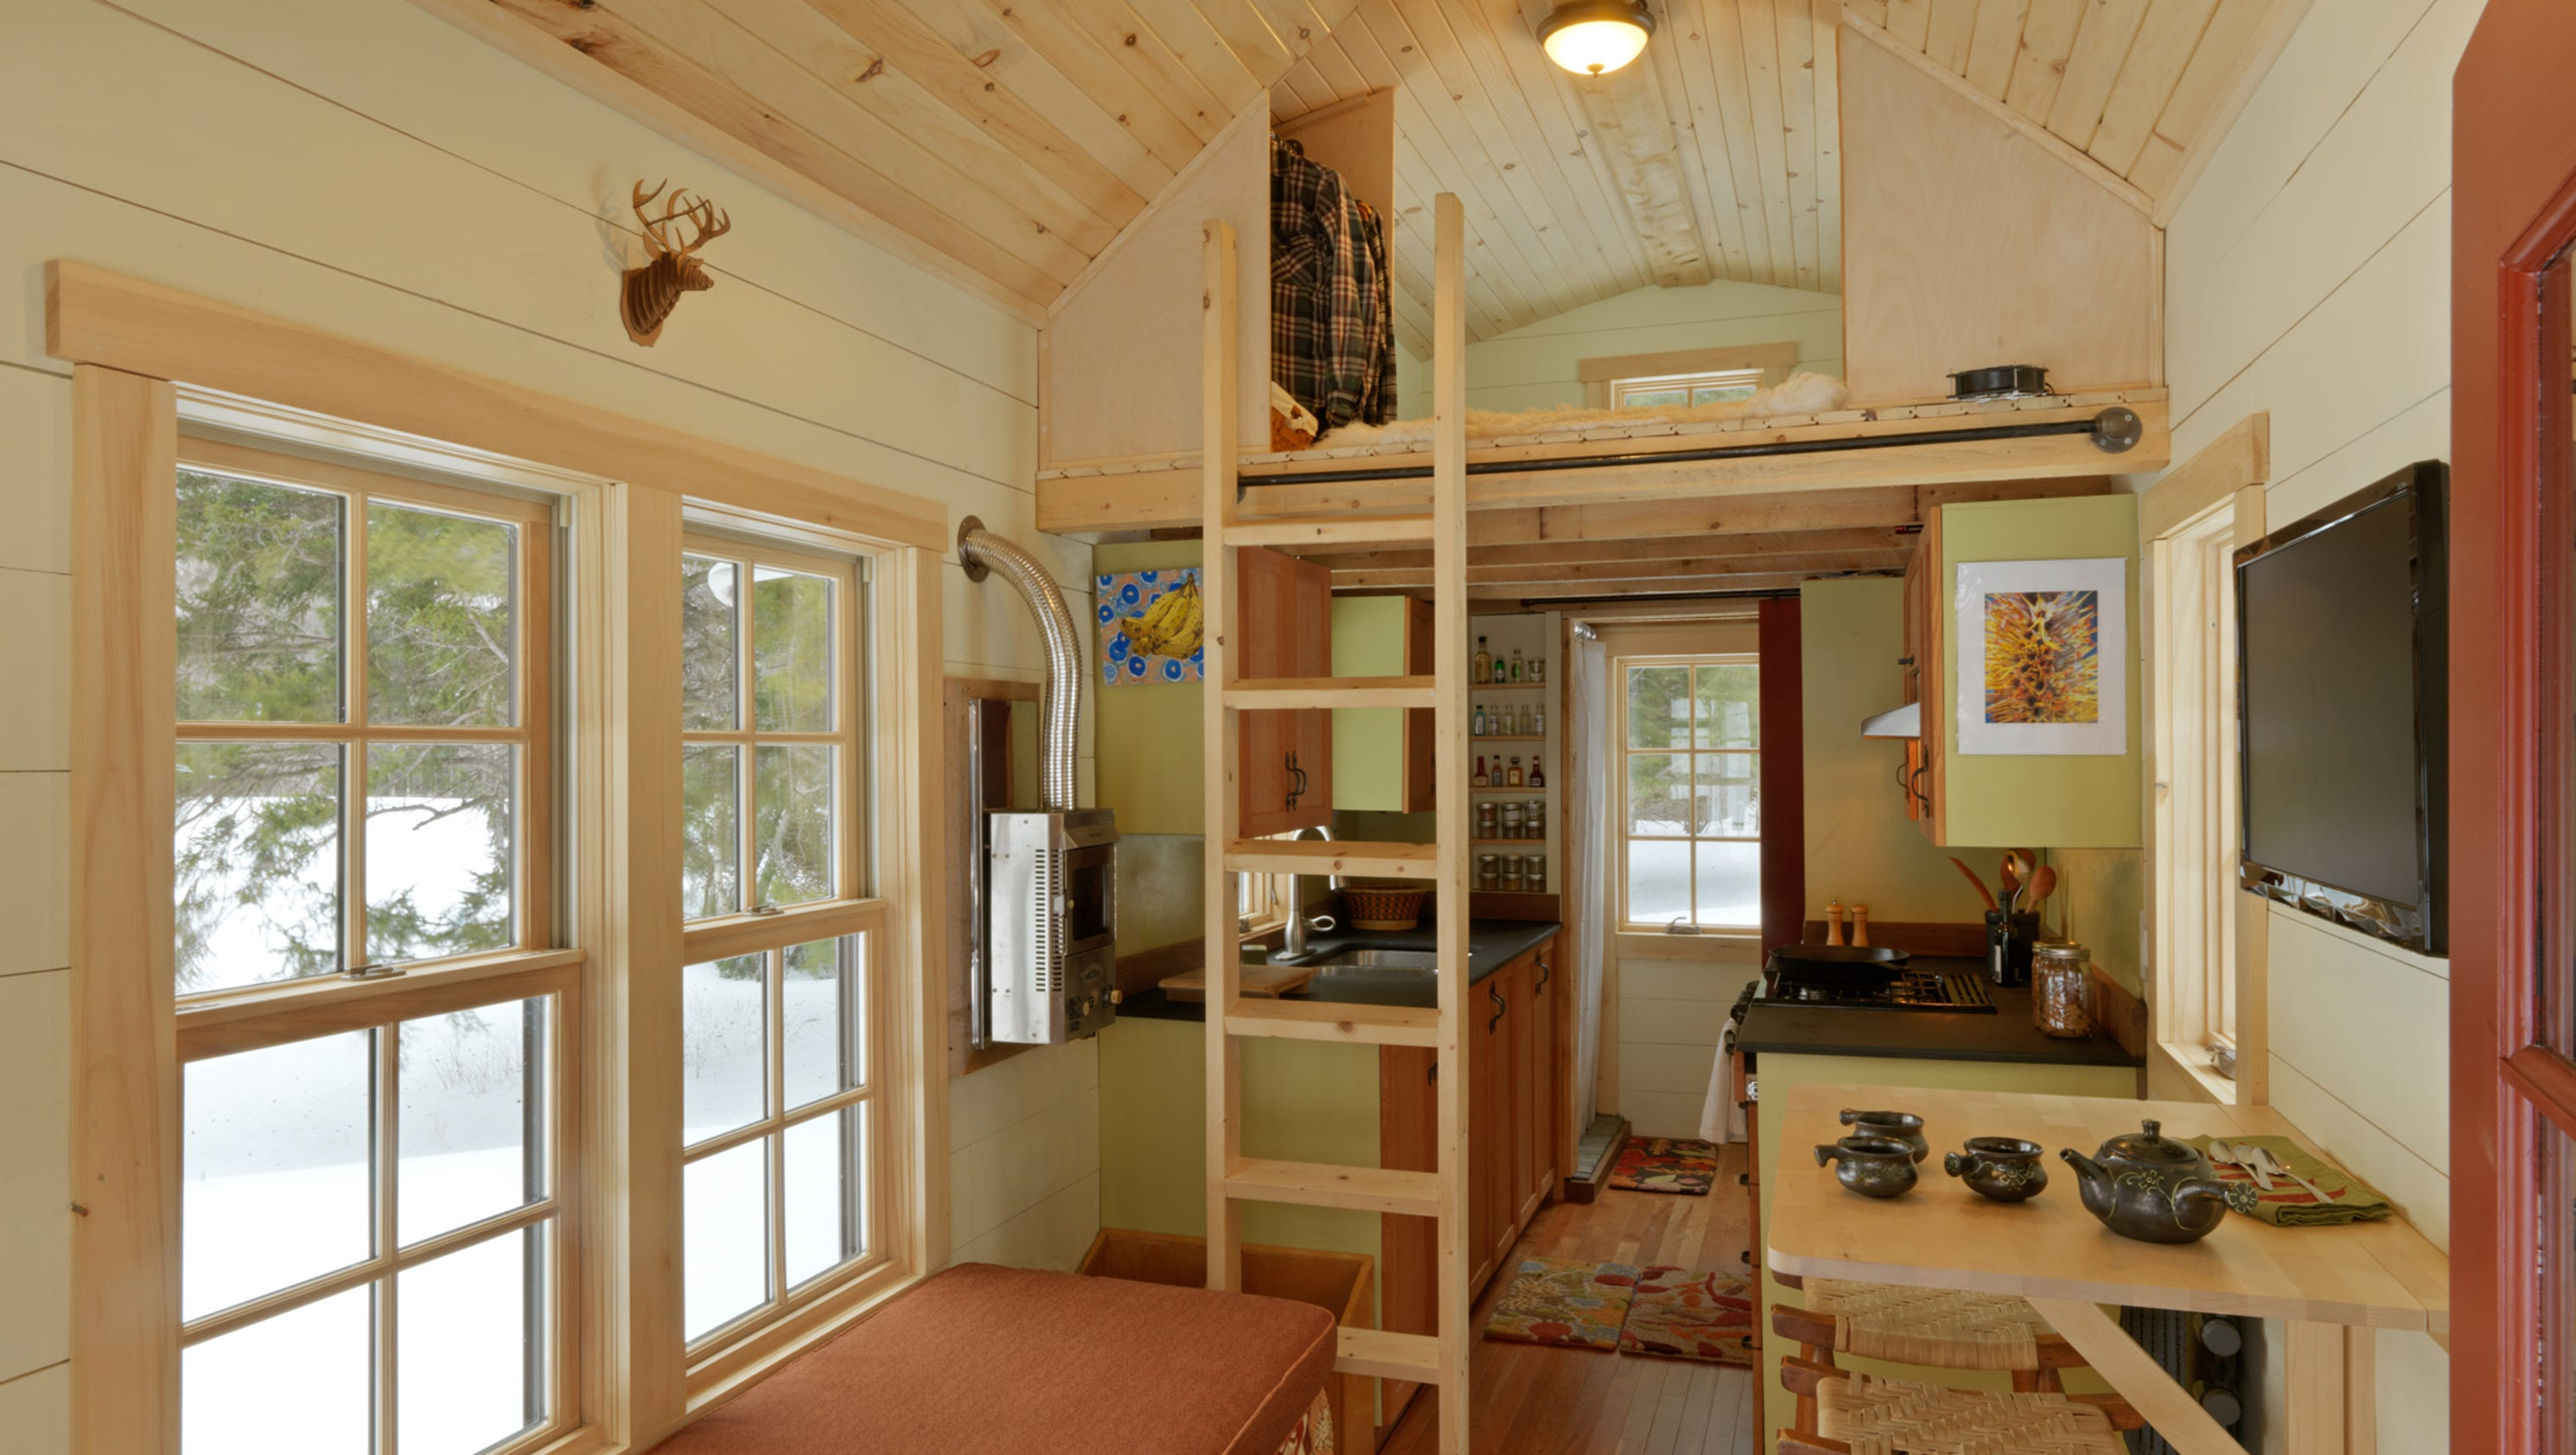 Tiny homes to be featured at weekend home show